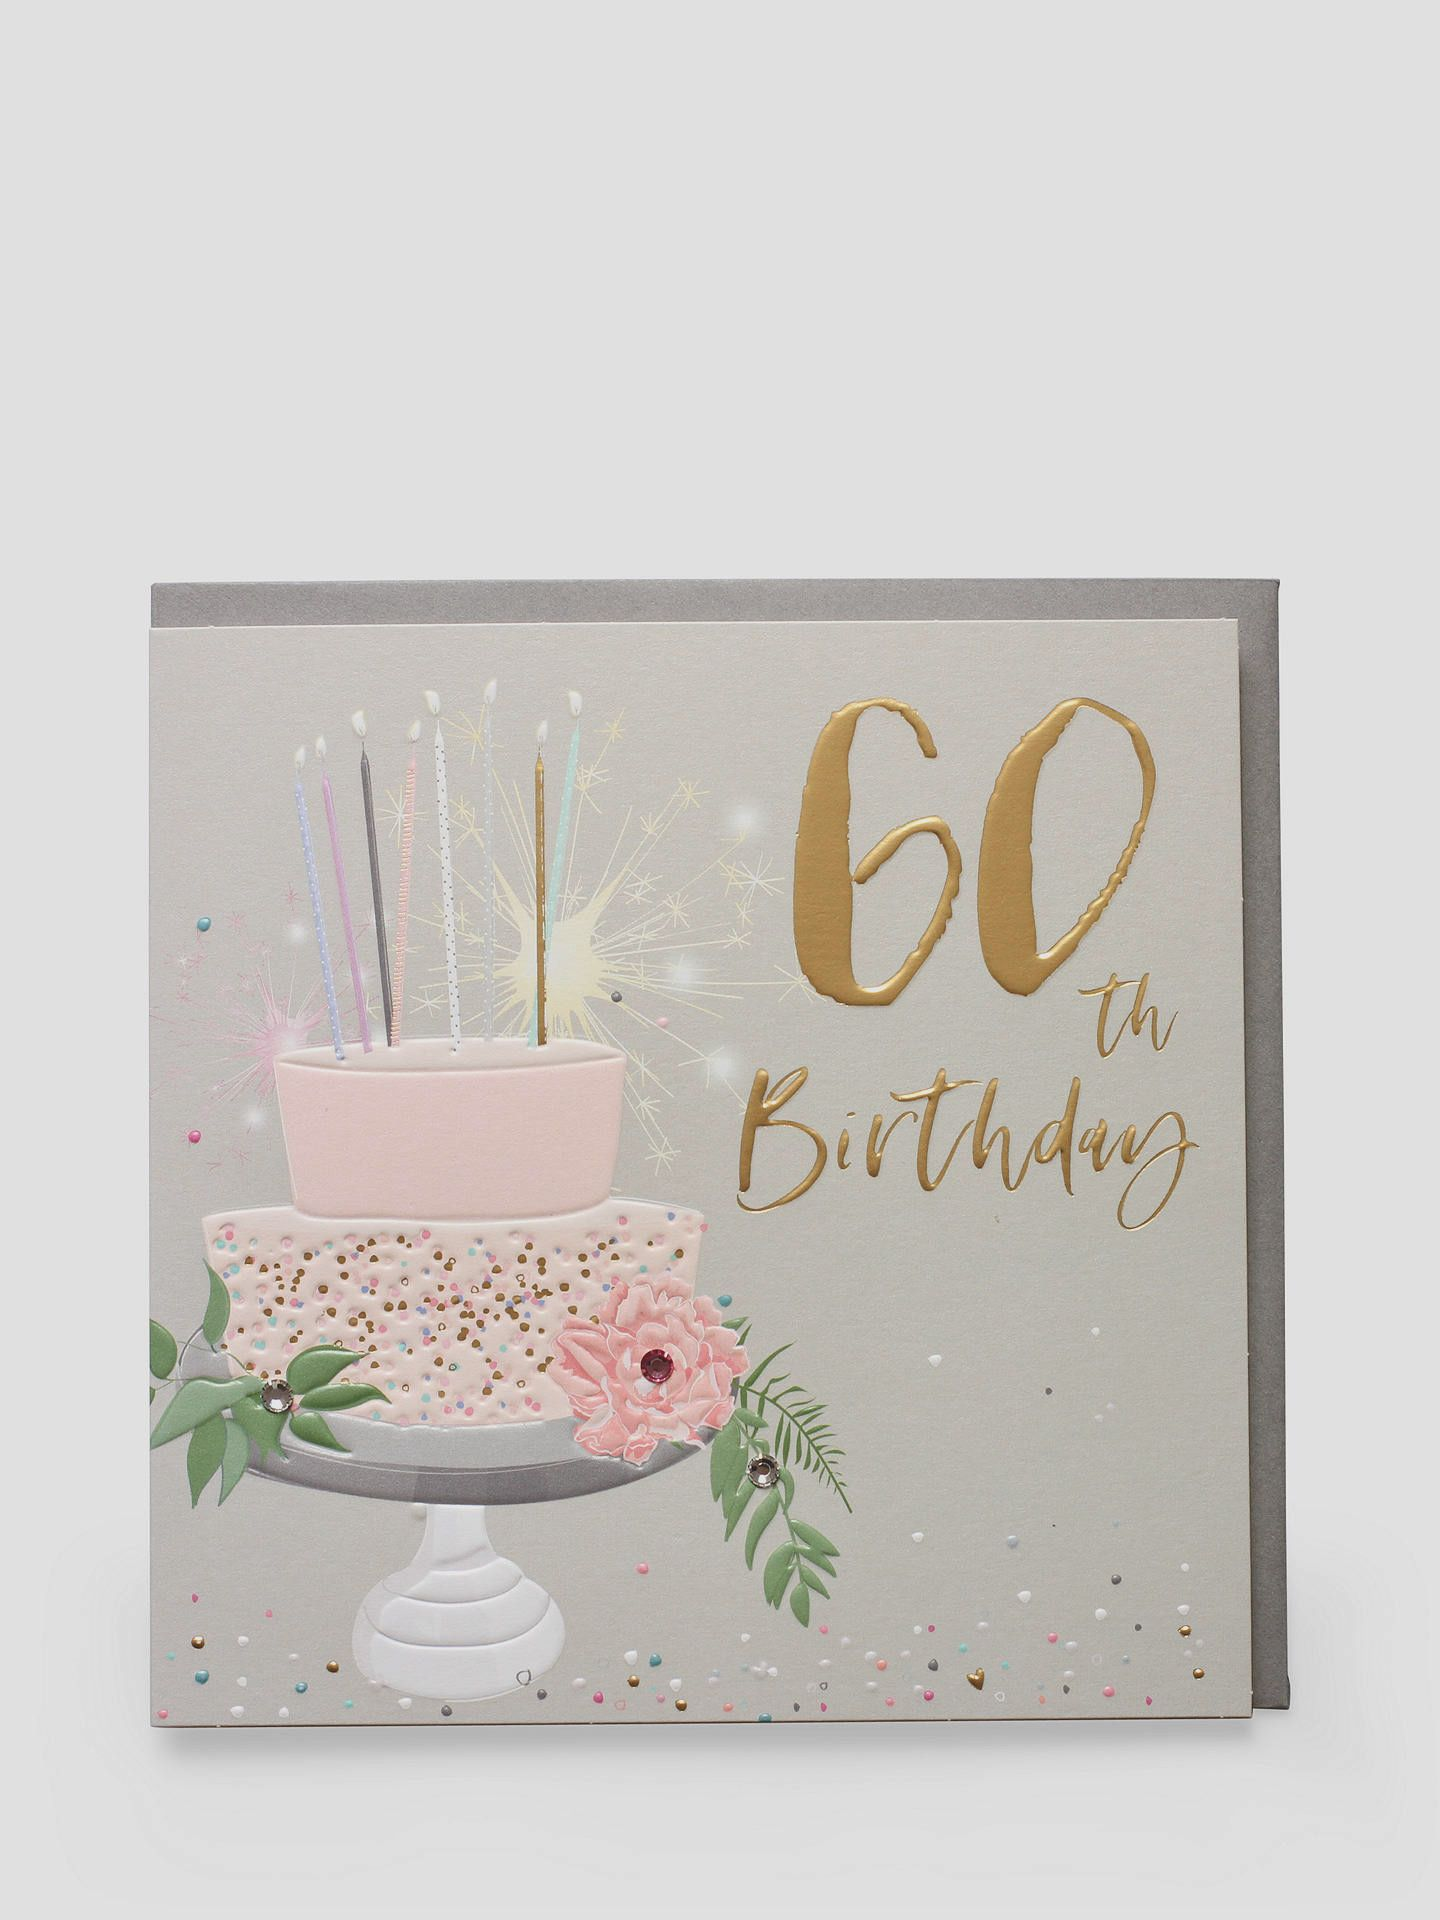 Funny 60th Birthday Gifts in 2020 60th birthday cards